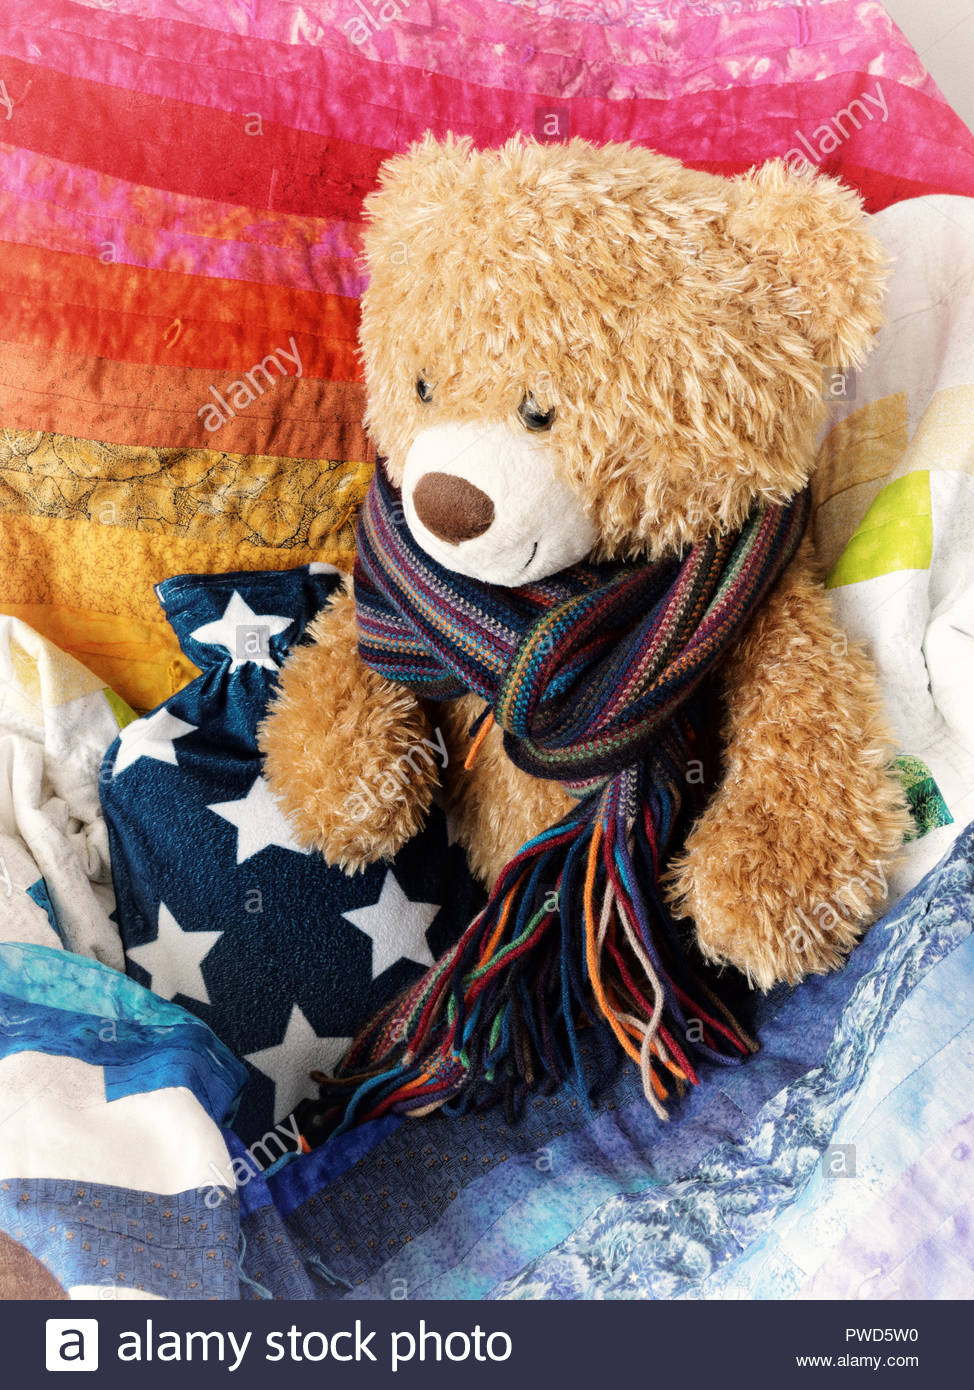 Abstract image of cuddly teddy bear, with hot water bottle, scarf and colourful blanket - Stock Image